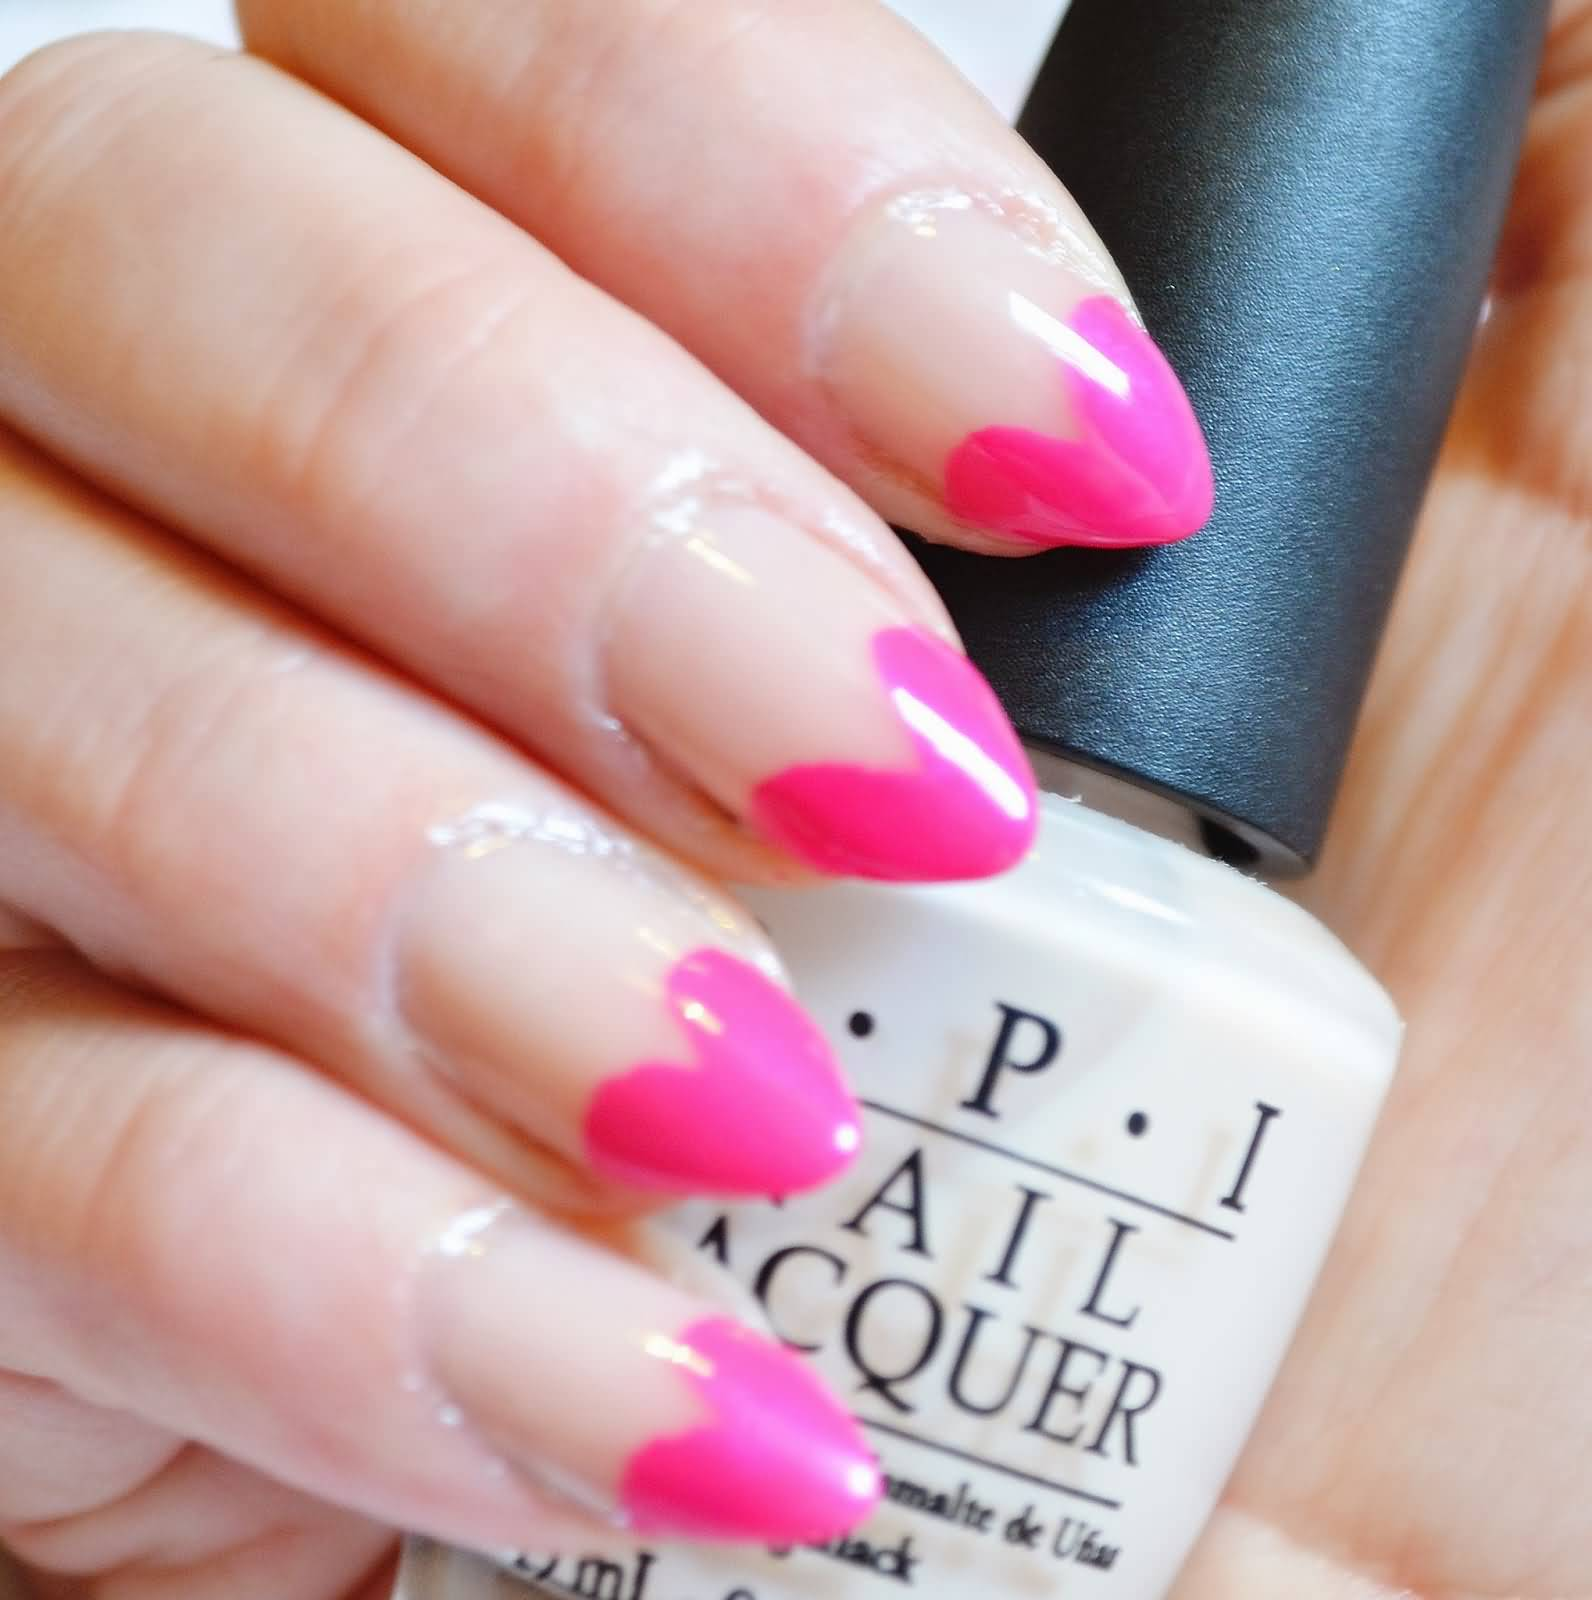 Glossy Pink French Tip Hearts Nail Art - 75 Most Stylish Pink Heart Nail Art Design Ideas